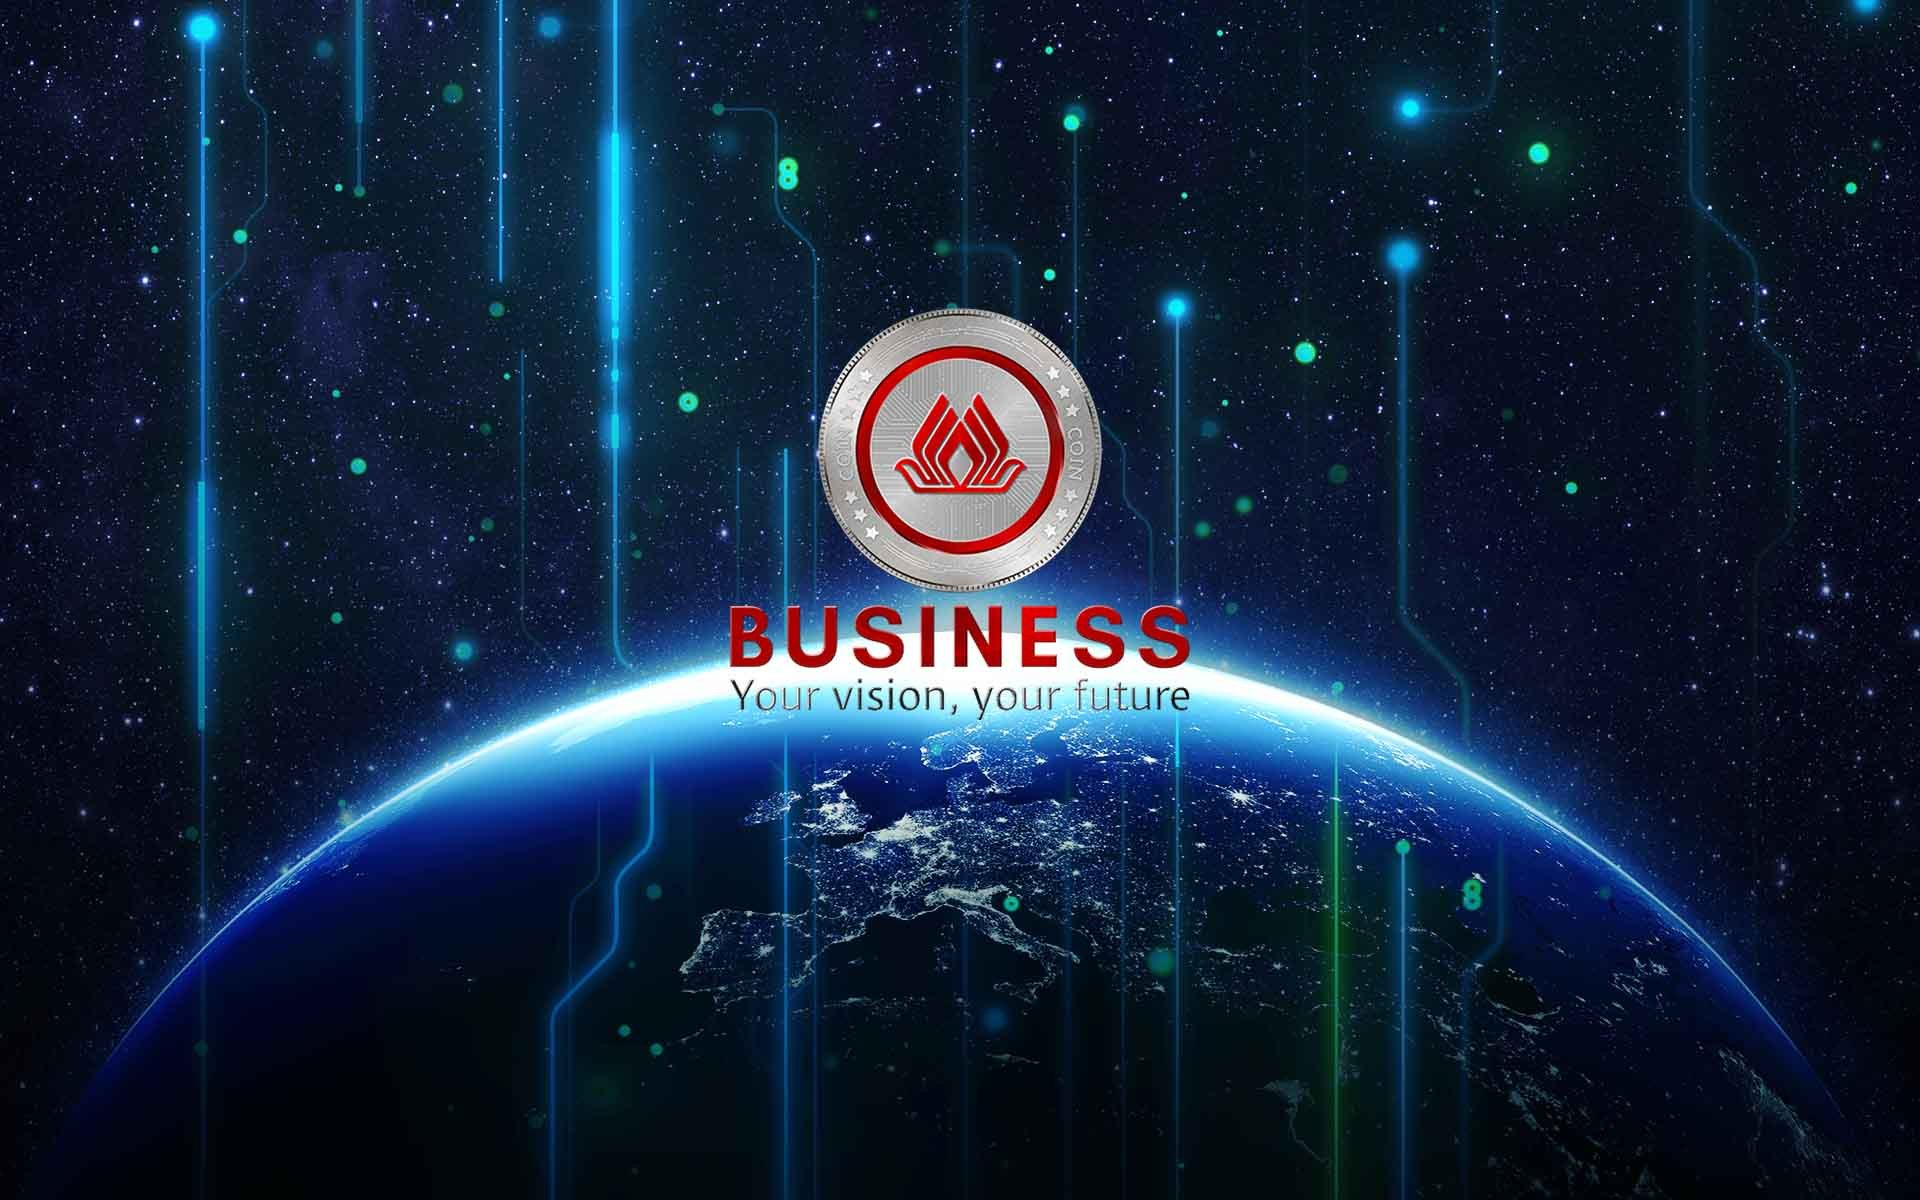 BUSINESSCOIN – Decentralized Apps in Service of Hospitality, E-commerce and Real Estate